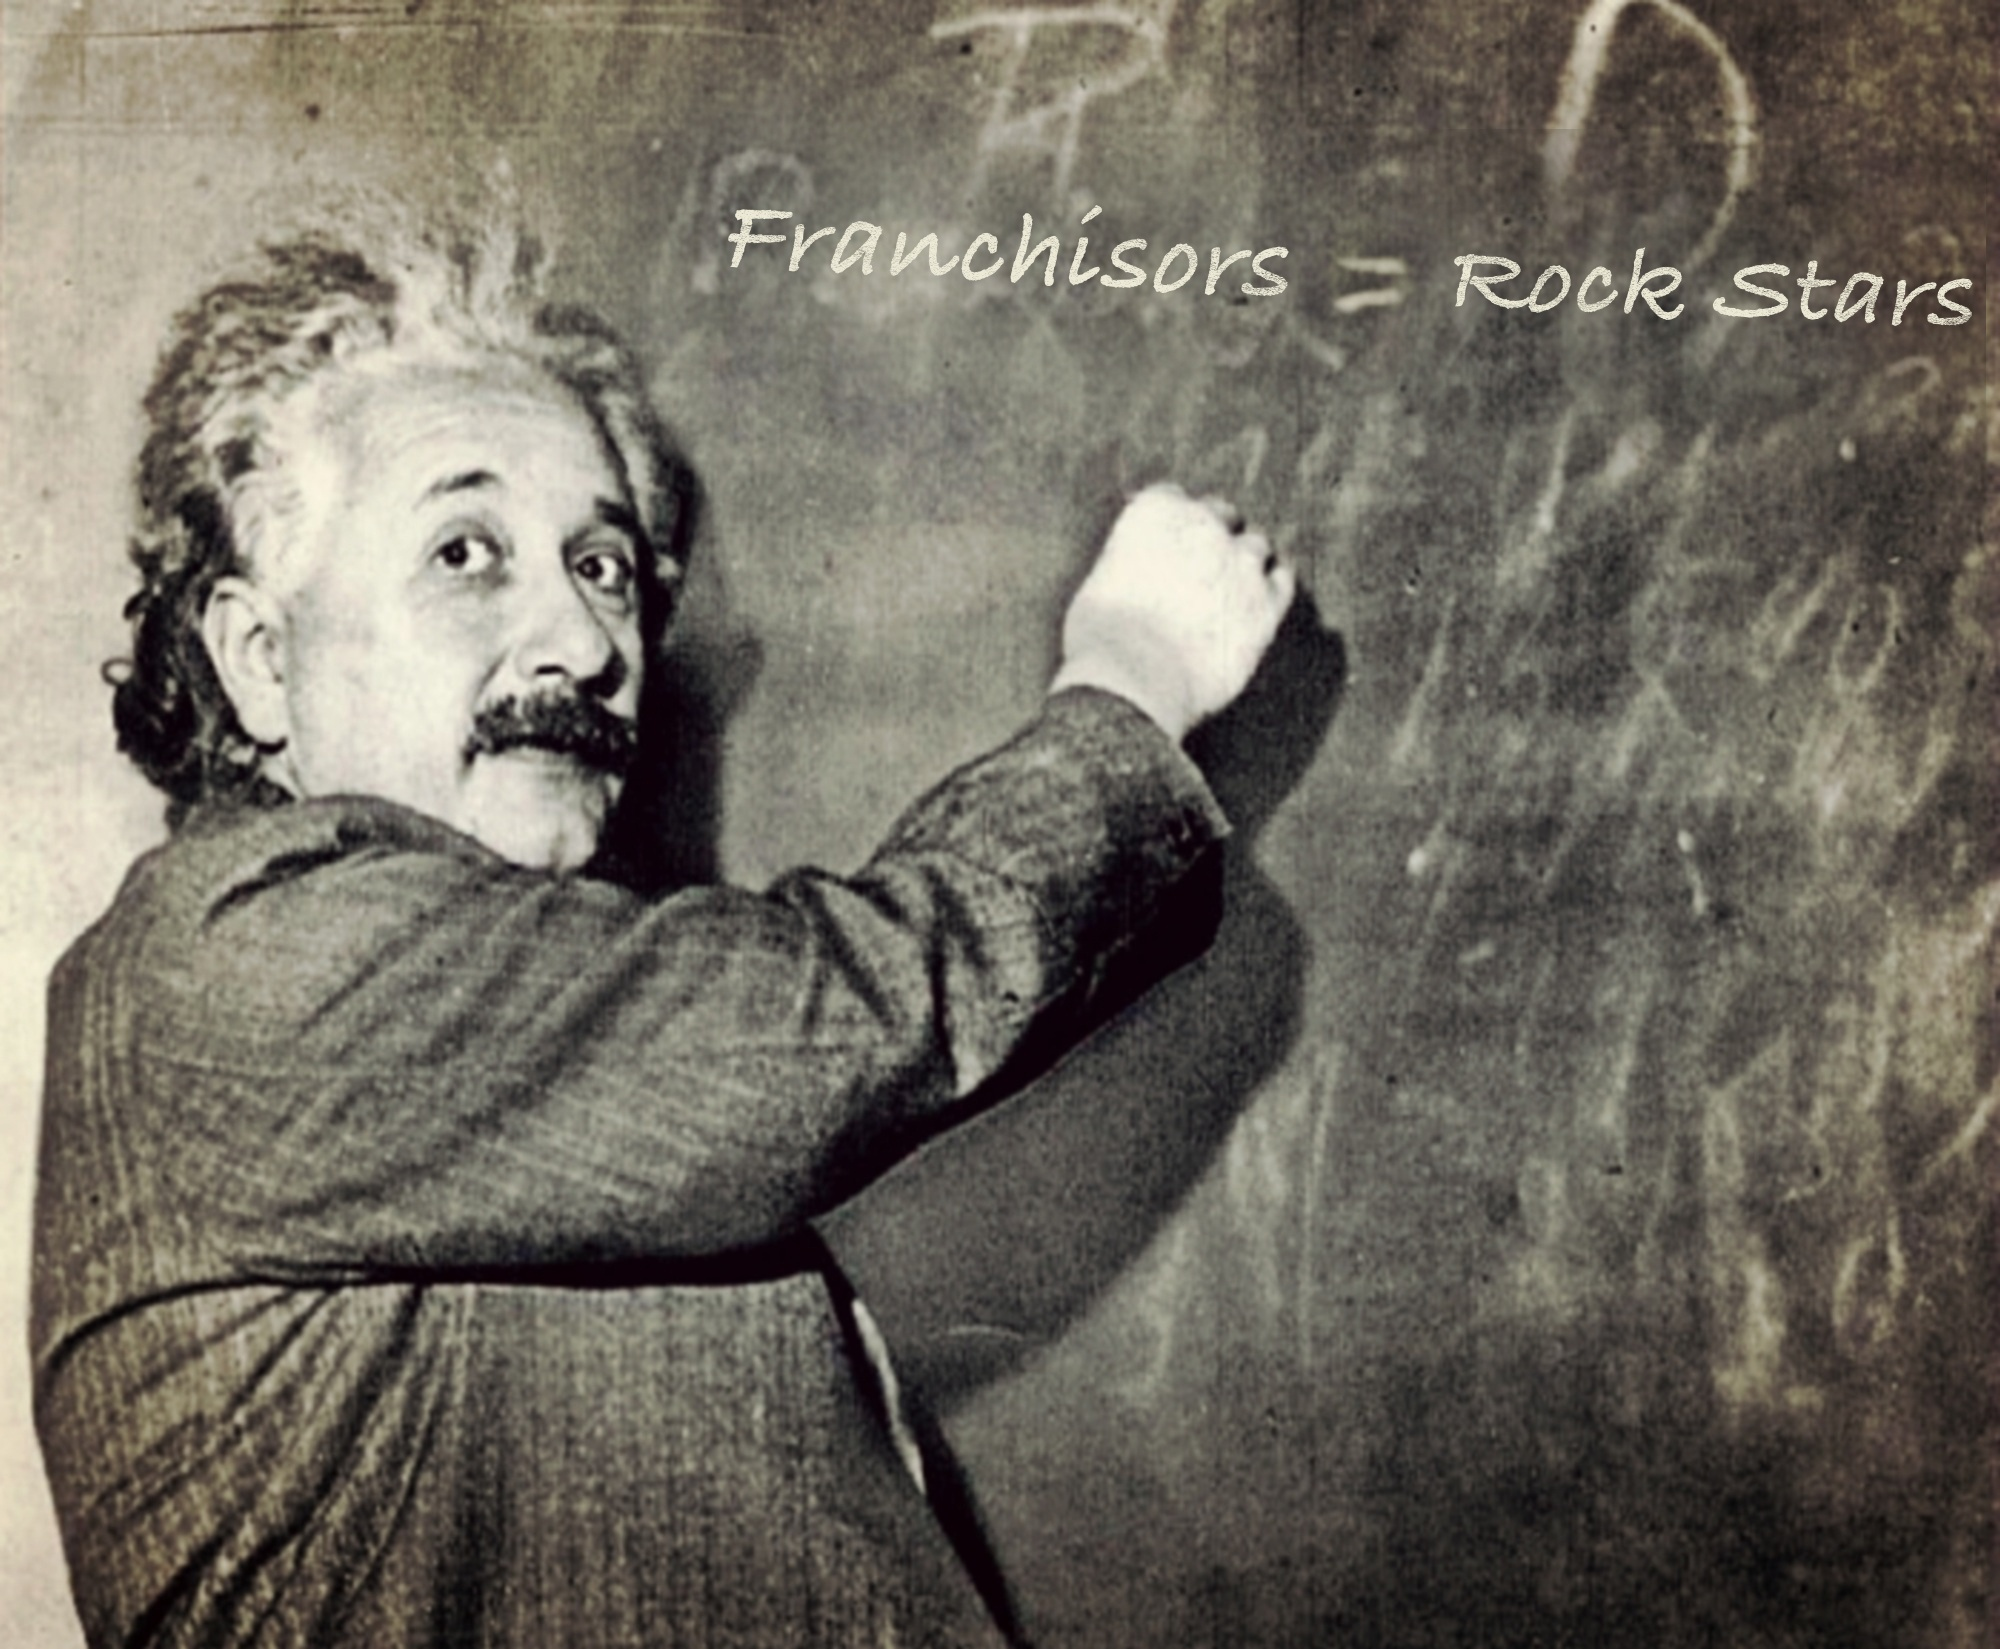 Einstein Says Franchisors Equal Rock Stars